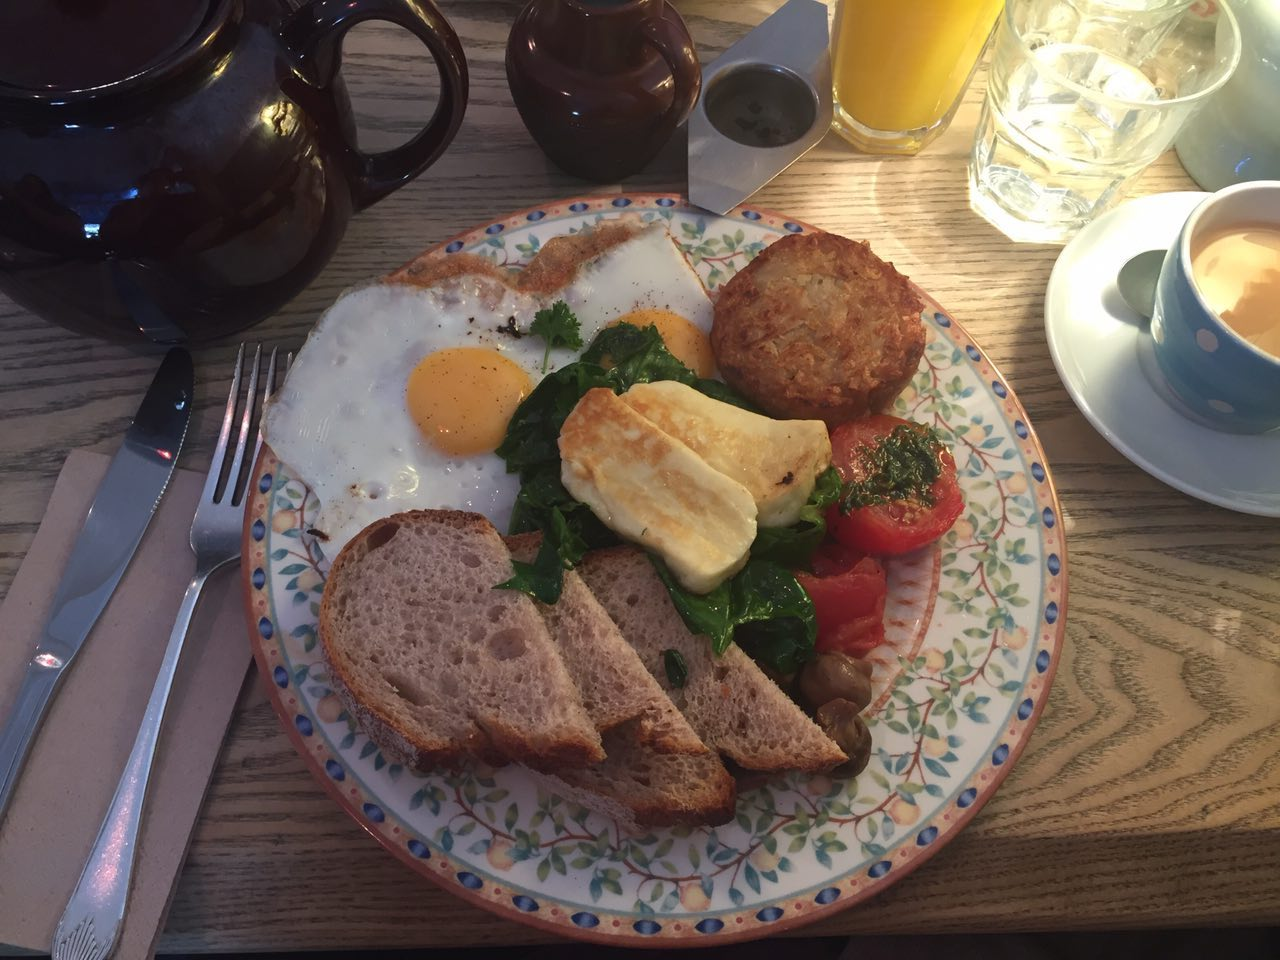 Veggie breakfast at The Haberdashery